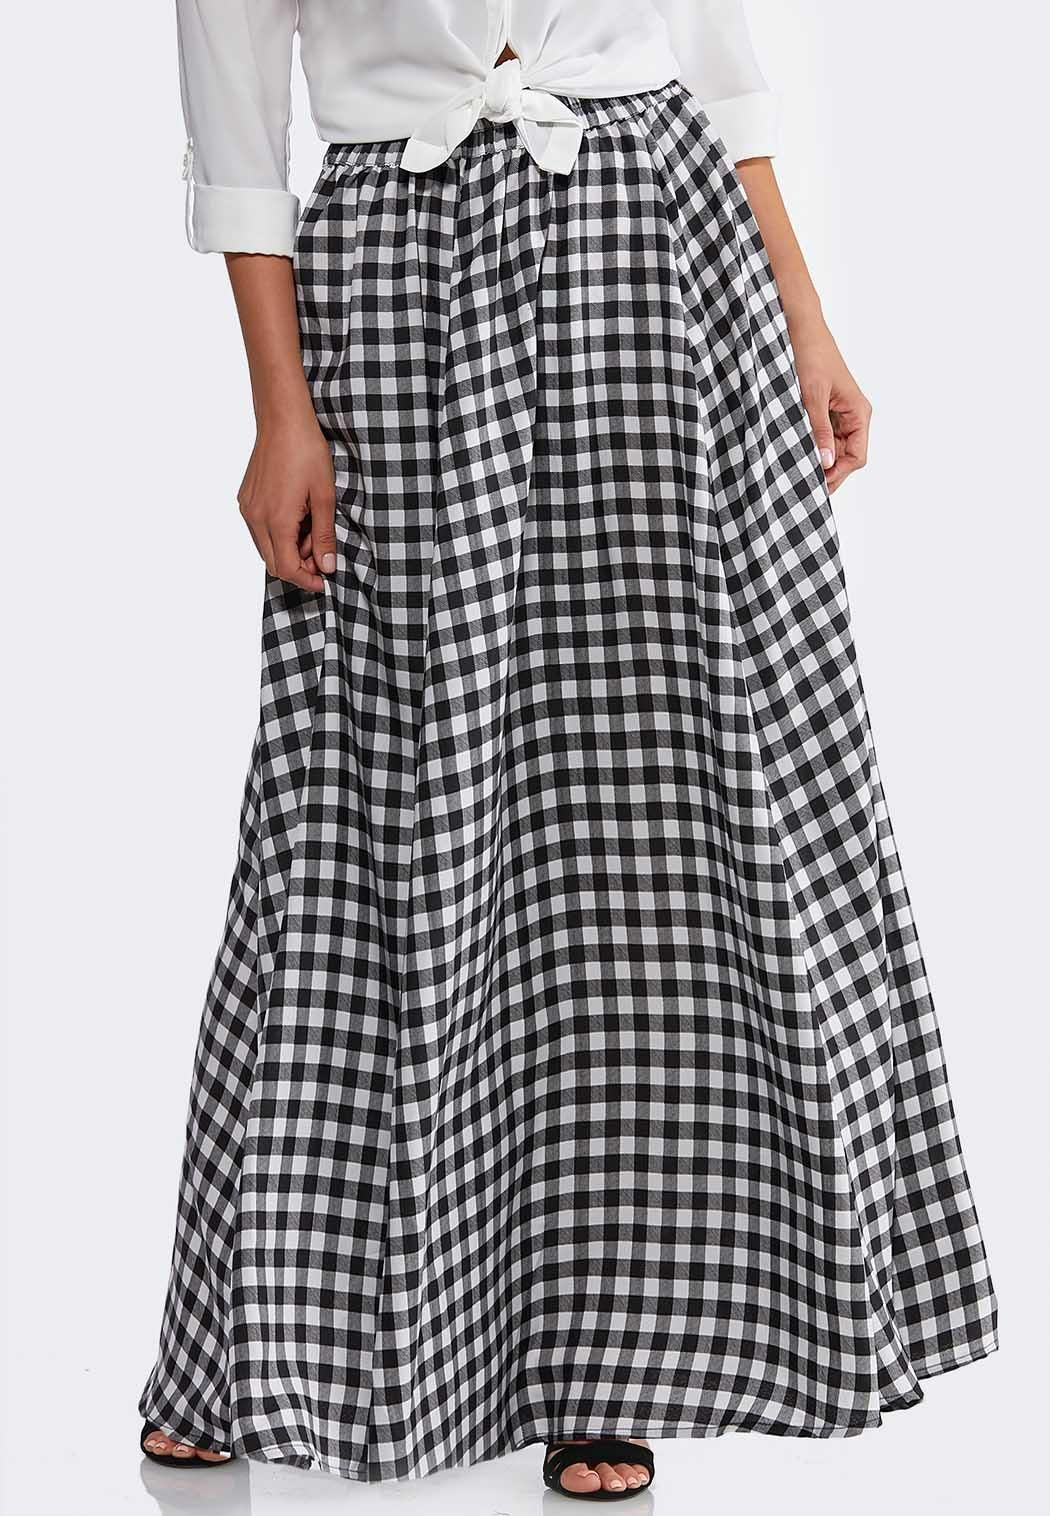 ad13d79ad Gingham Maxi Skirt Maxi Cato Fashions in 2019 | Cool & Casual Maxis ...